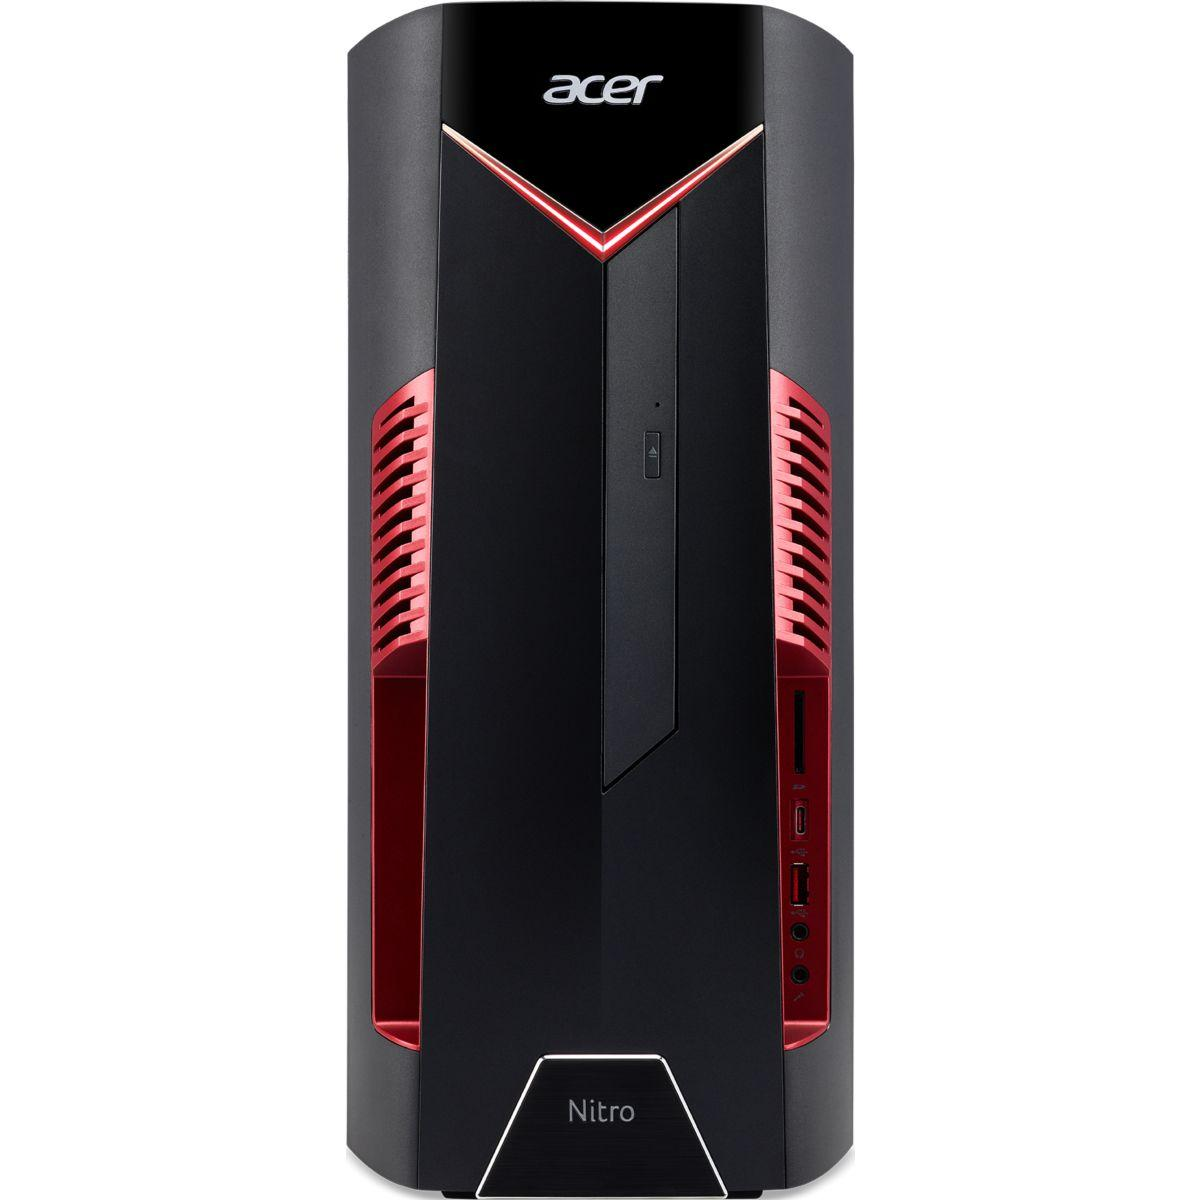 Pc gamer acer nitro n50-600-037 (photo)